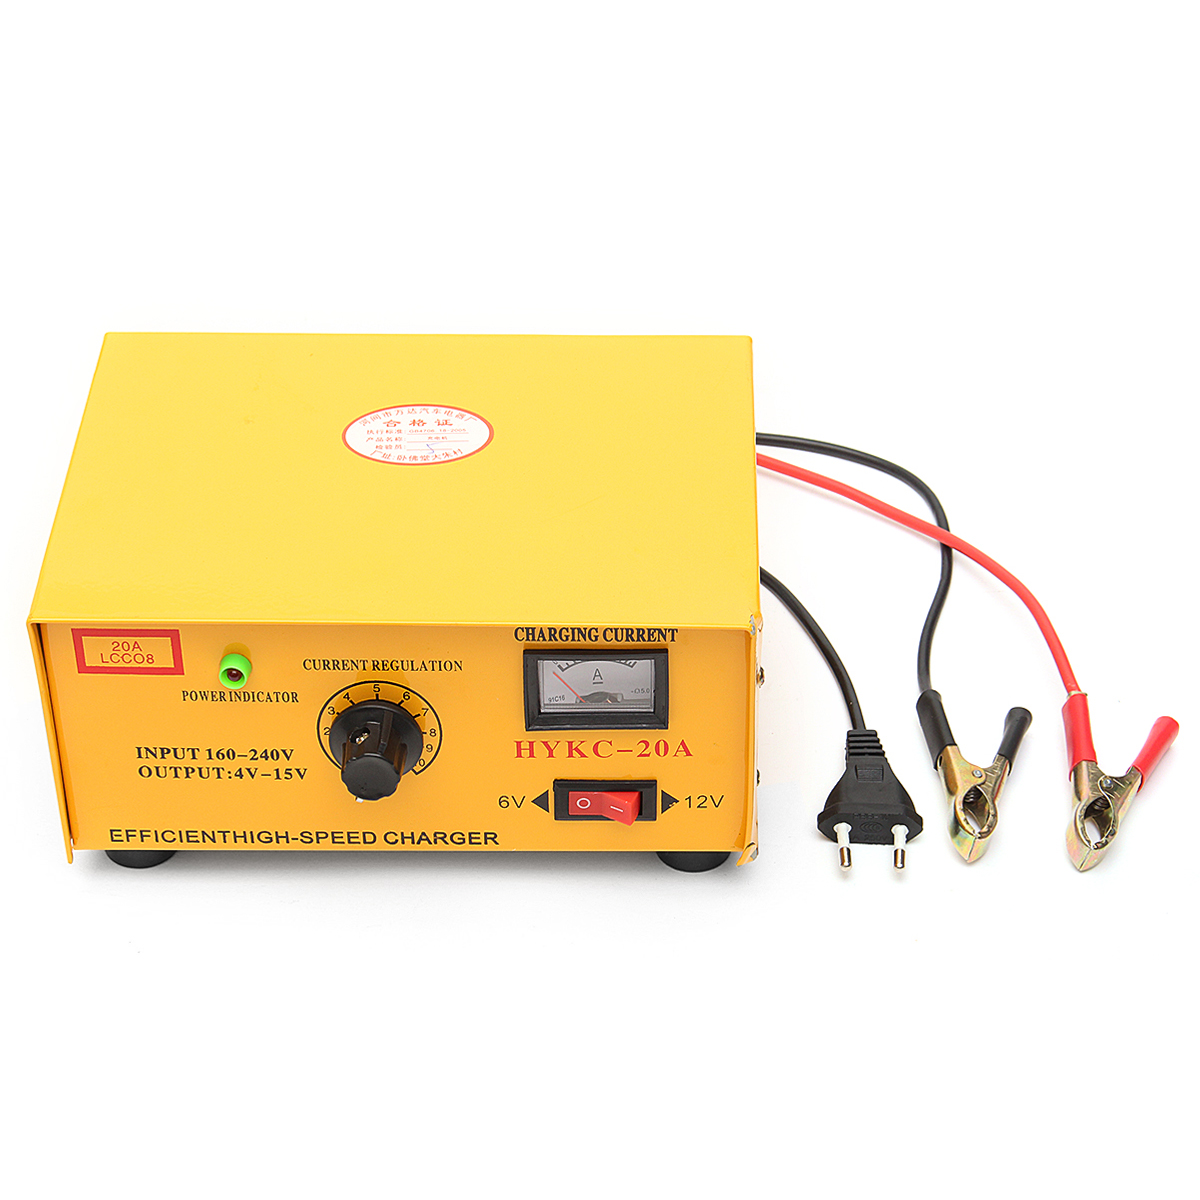 Online Shopping For Electronics Fashion Home Automotive 0v To 12v Electrical Voltage Indicator Pure Copper Machines Motorcycles And Cars Can All Be Used Constant Charging Will Arranged Provide Various Protections Avoid